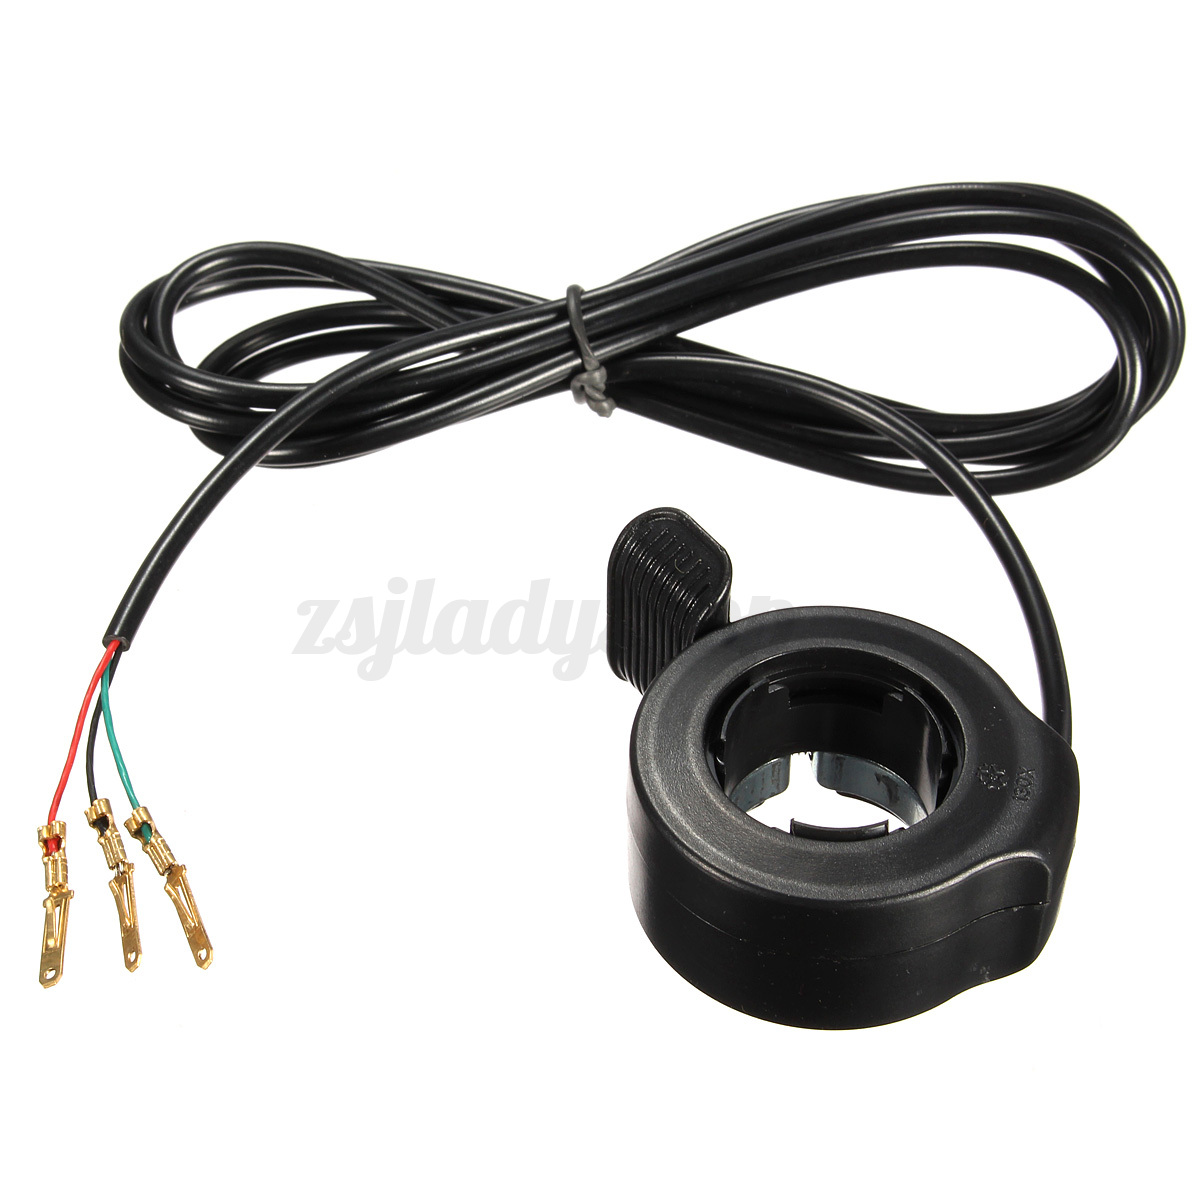 Throttle Lever For Dc Moter : Universal throttle lever thumb controller assembly